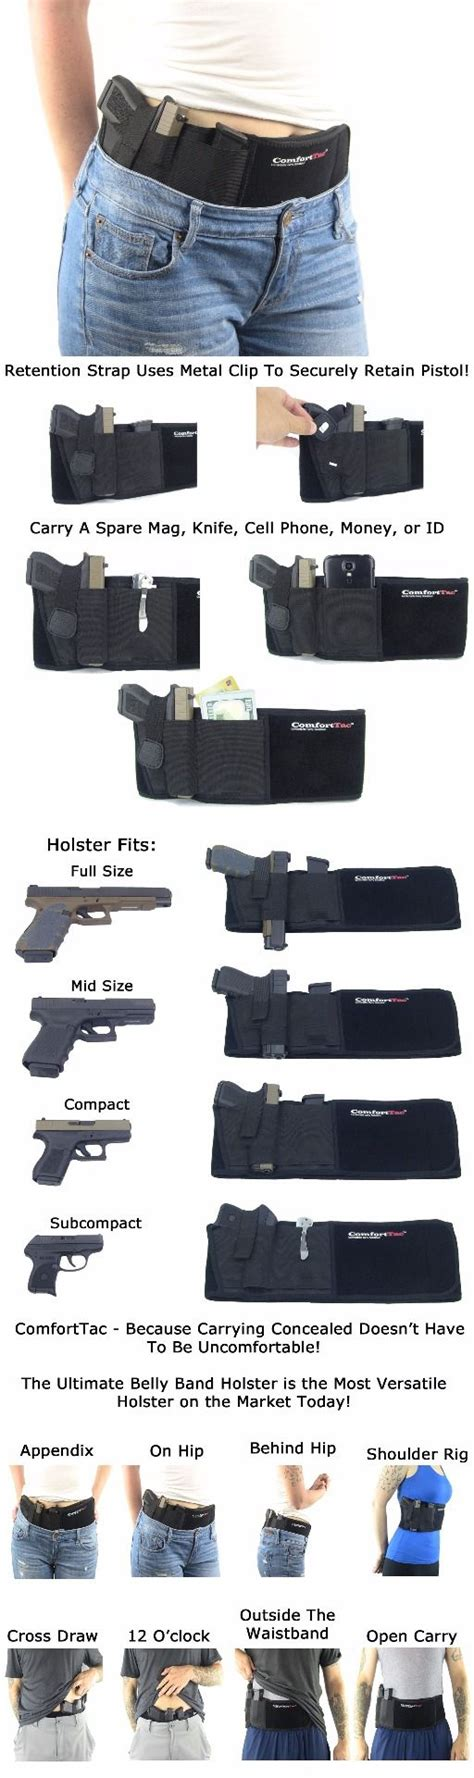 concealed carry knife holster best 25 concealed carry ideas on